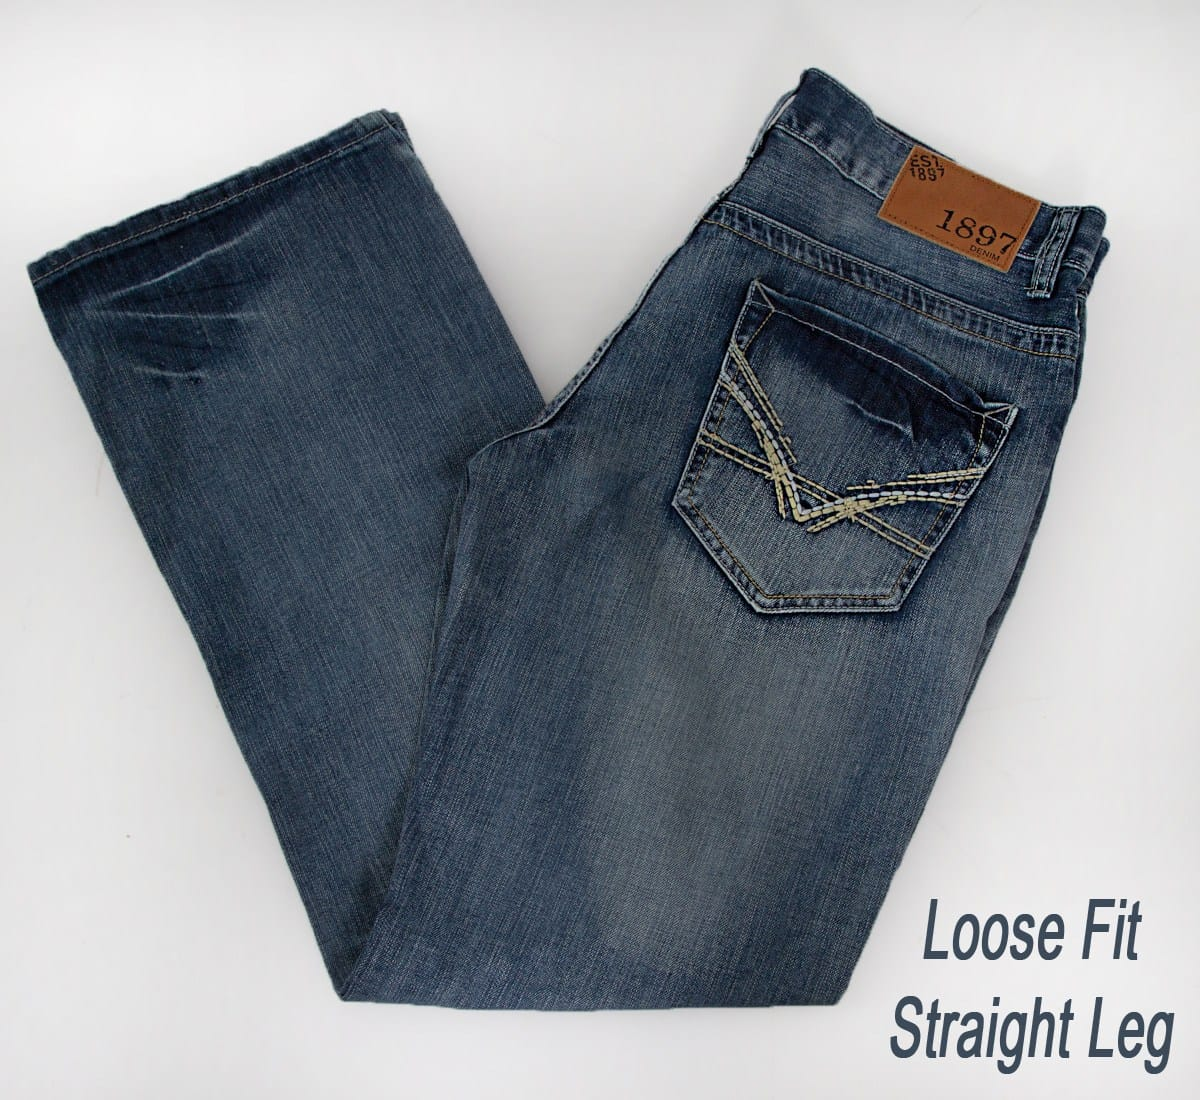 1897-loose-fit-straight-leg-jean